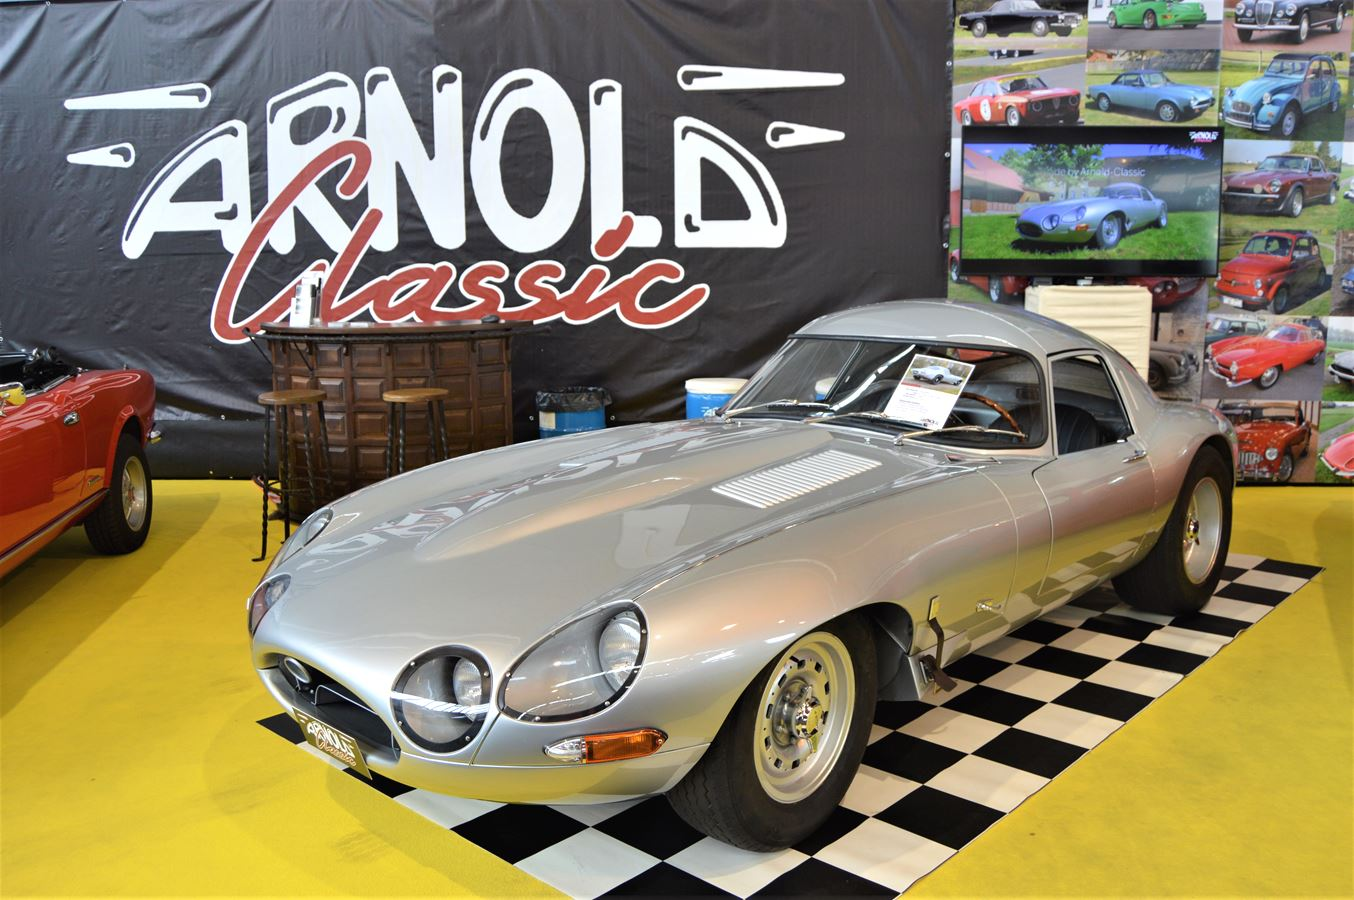 MOTORWORLD Classics Bodensee 2018 Arnold Classic Oldtimer Lauenau